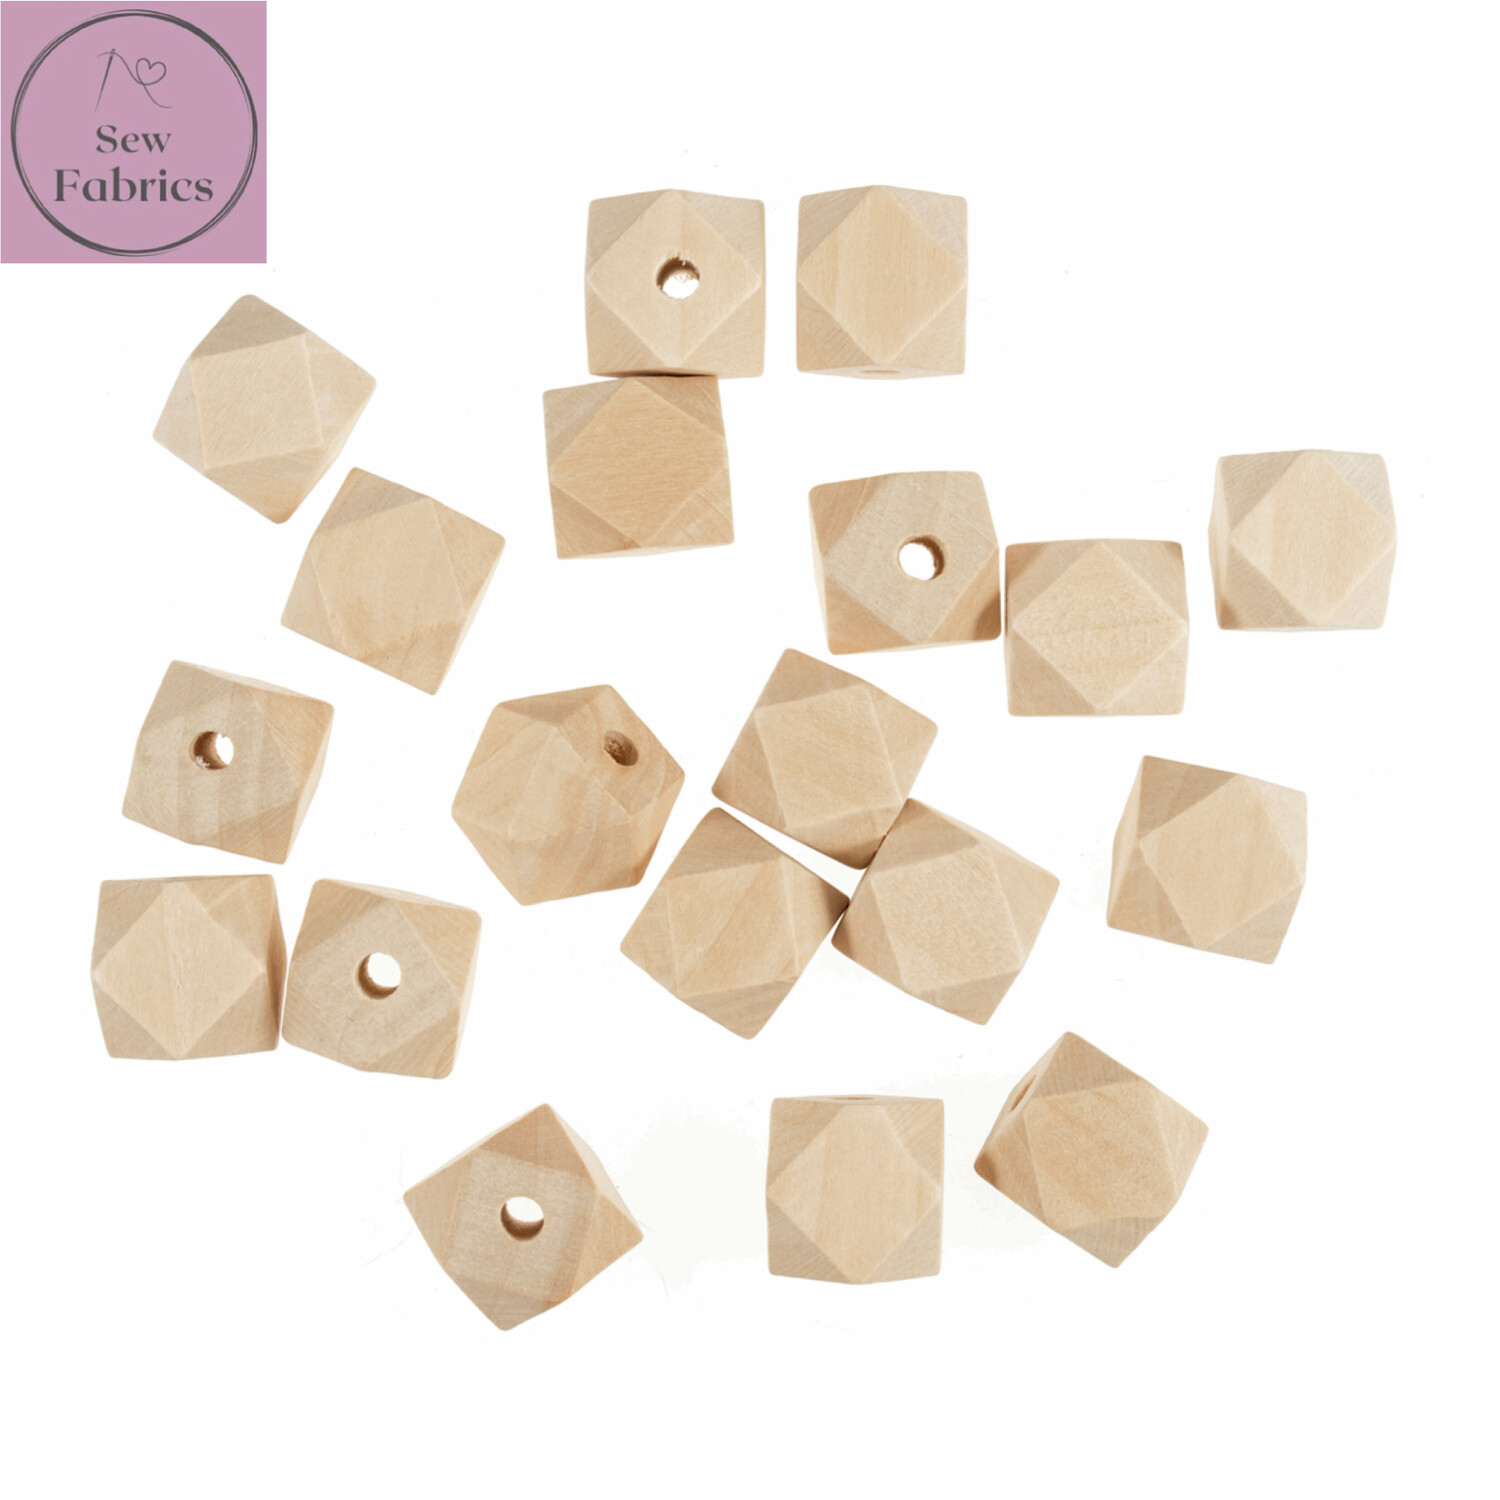 Pack of 5 x 20mm Geo-Cut Trimits Wooden Beech Beads with 5mm Centre Hole, Macrame, Decorations